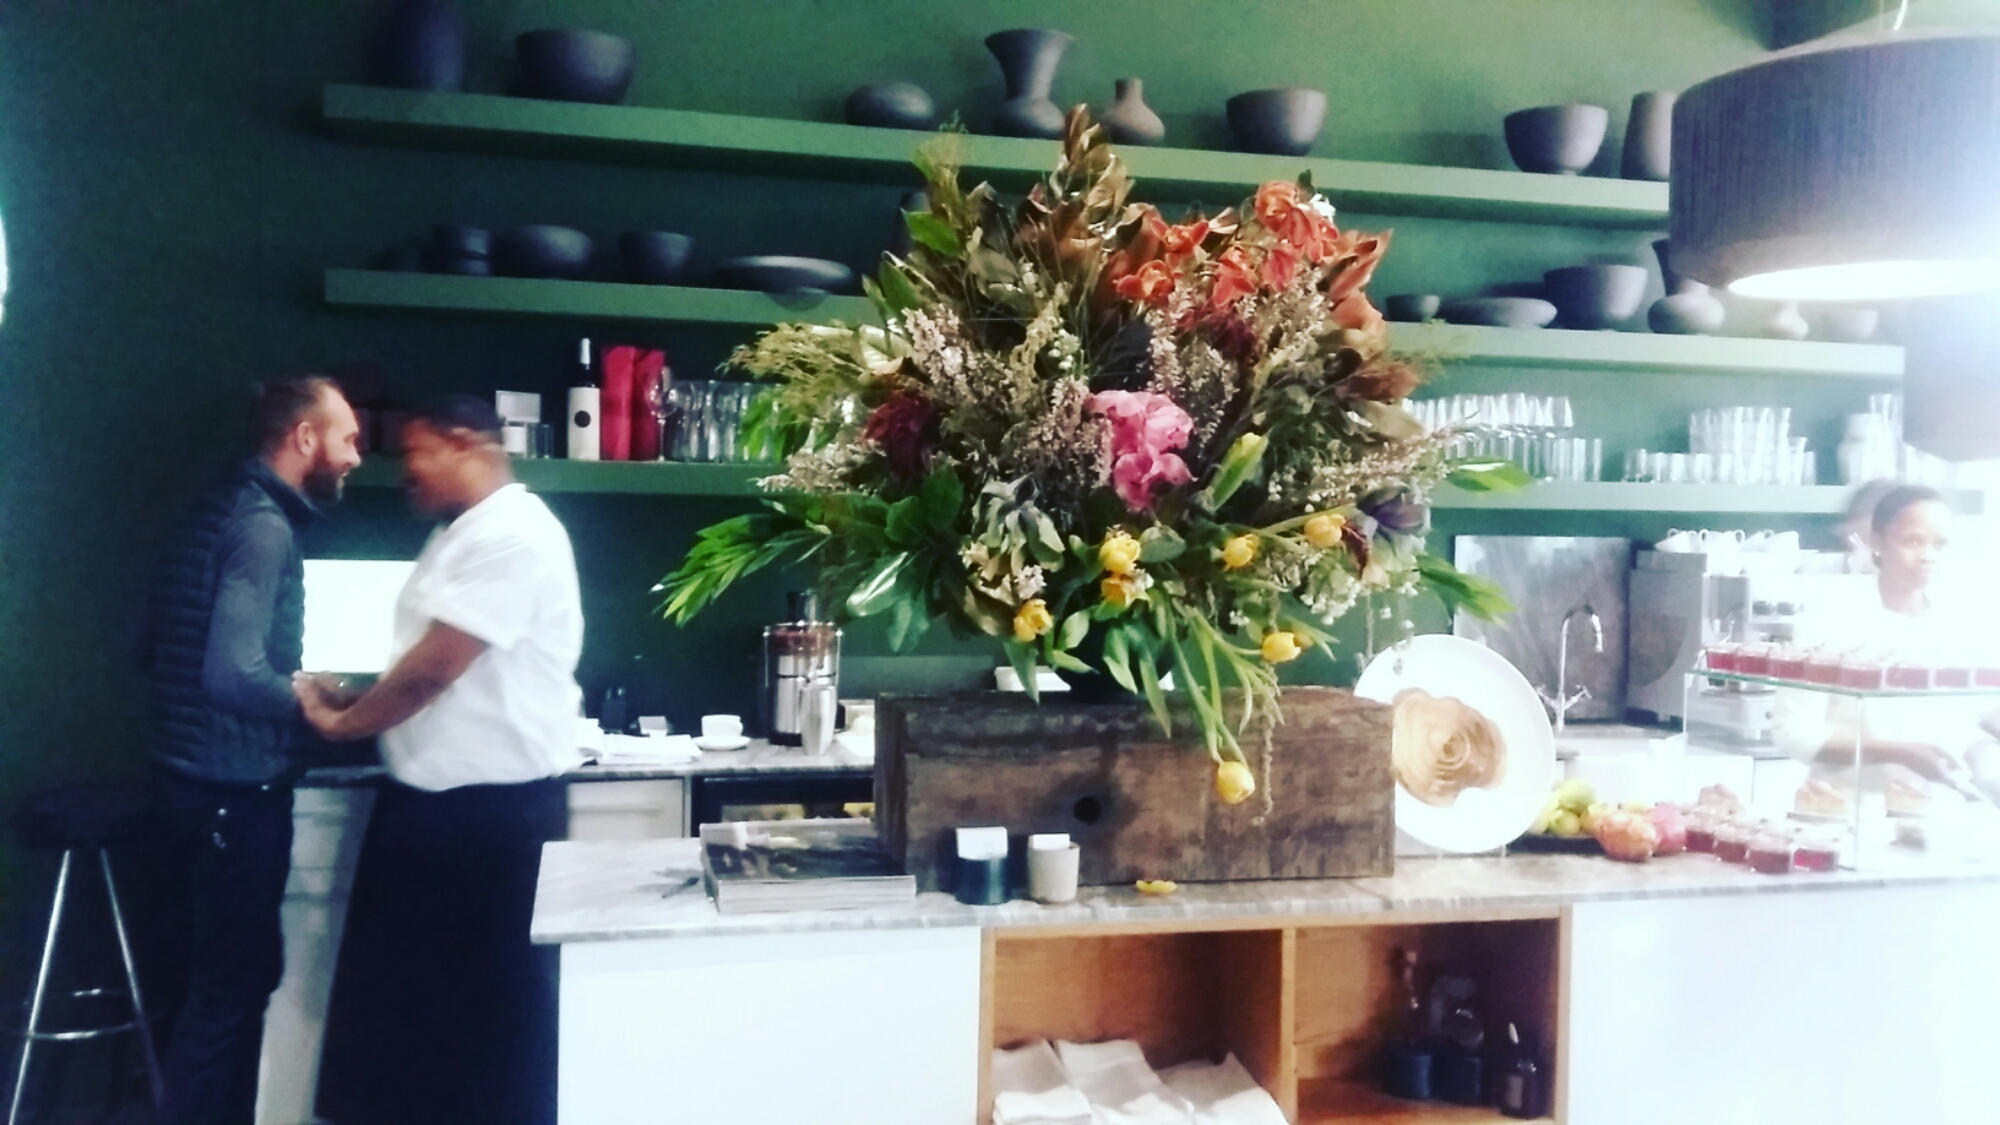 Exuberant floral display, tarts, fruit preserves and jellies on the service counter